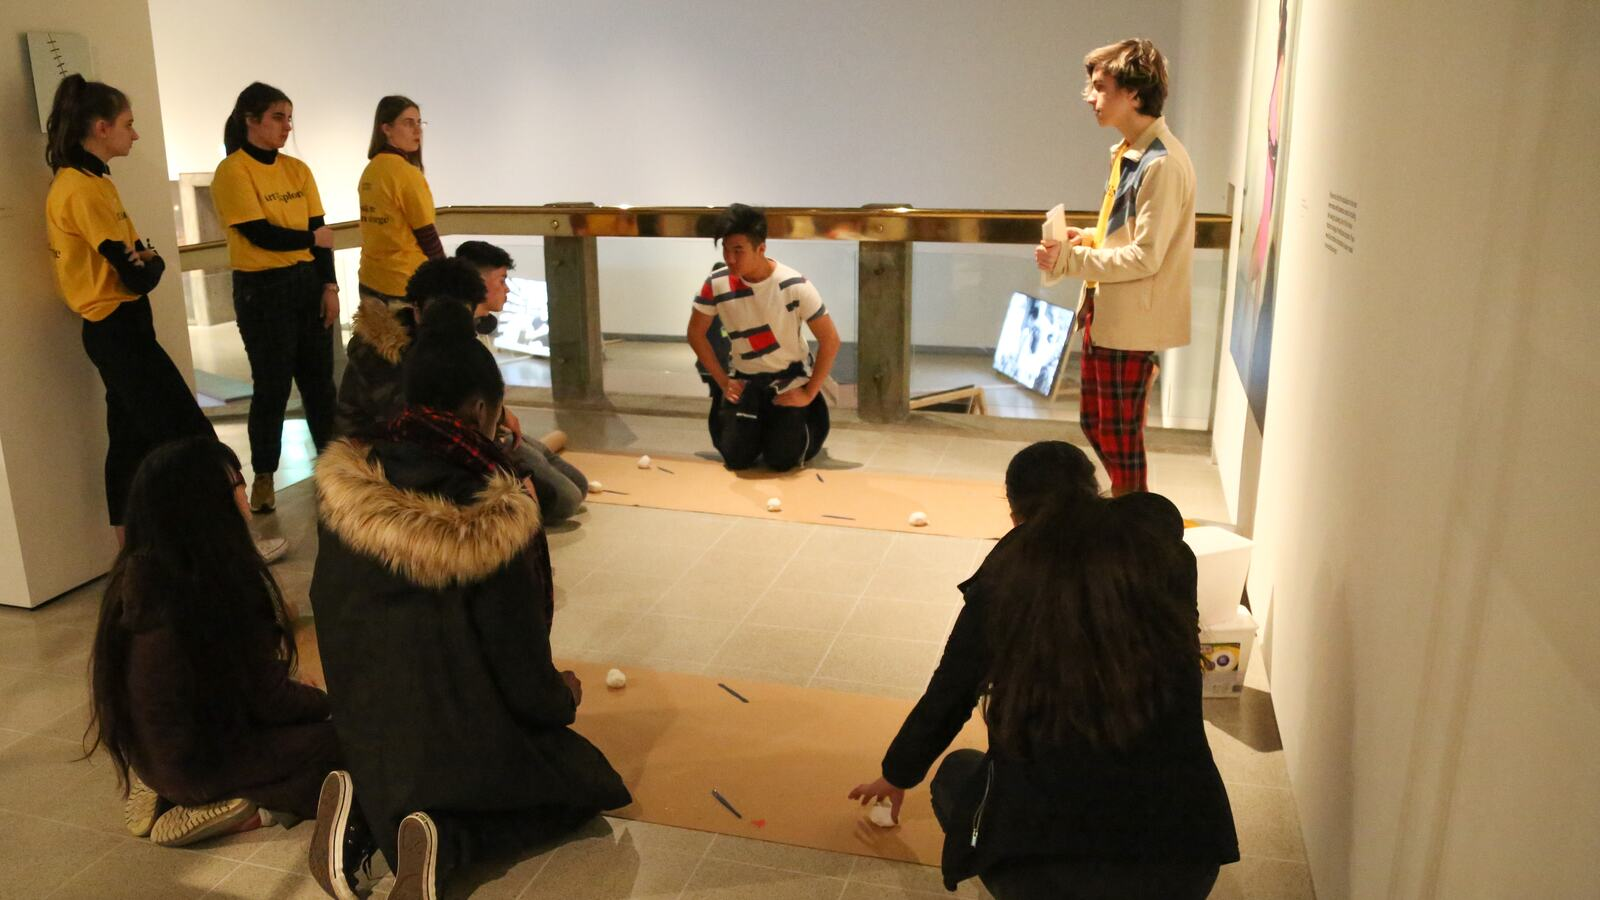 Creative Learning discussion in Hayward Gallery